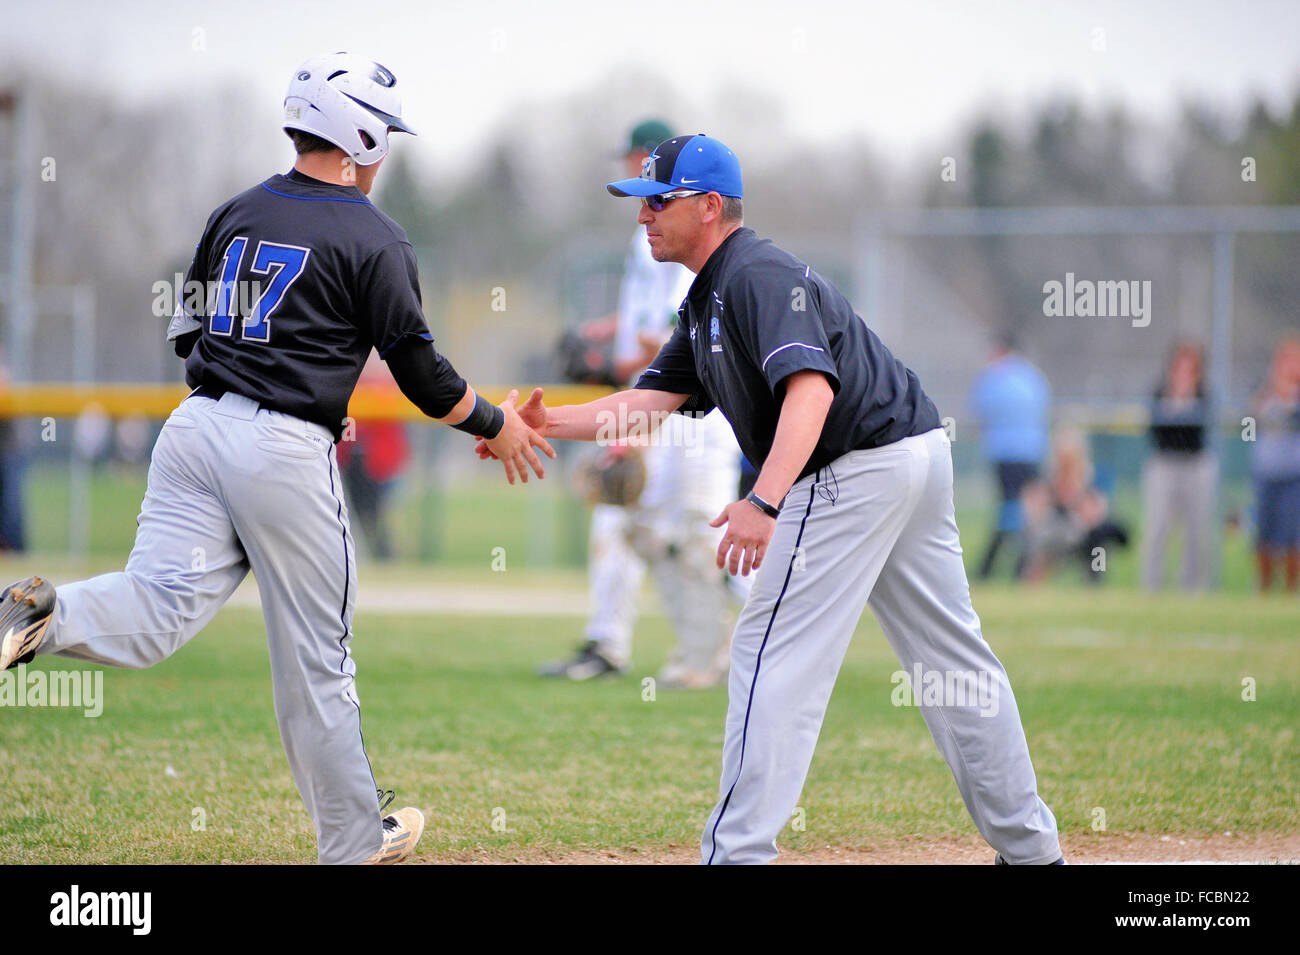 Third base coach congratulations a base runner as he rounds third base after hitting a home run in a high school - Stock Image